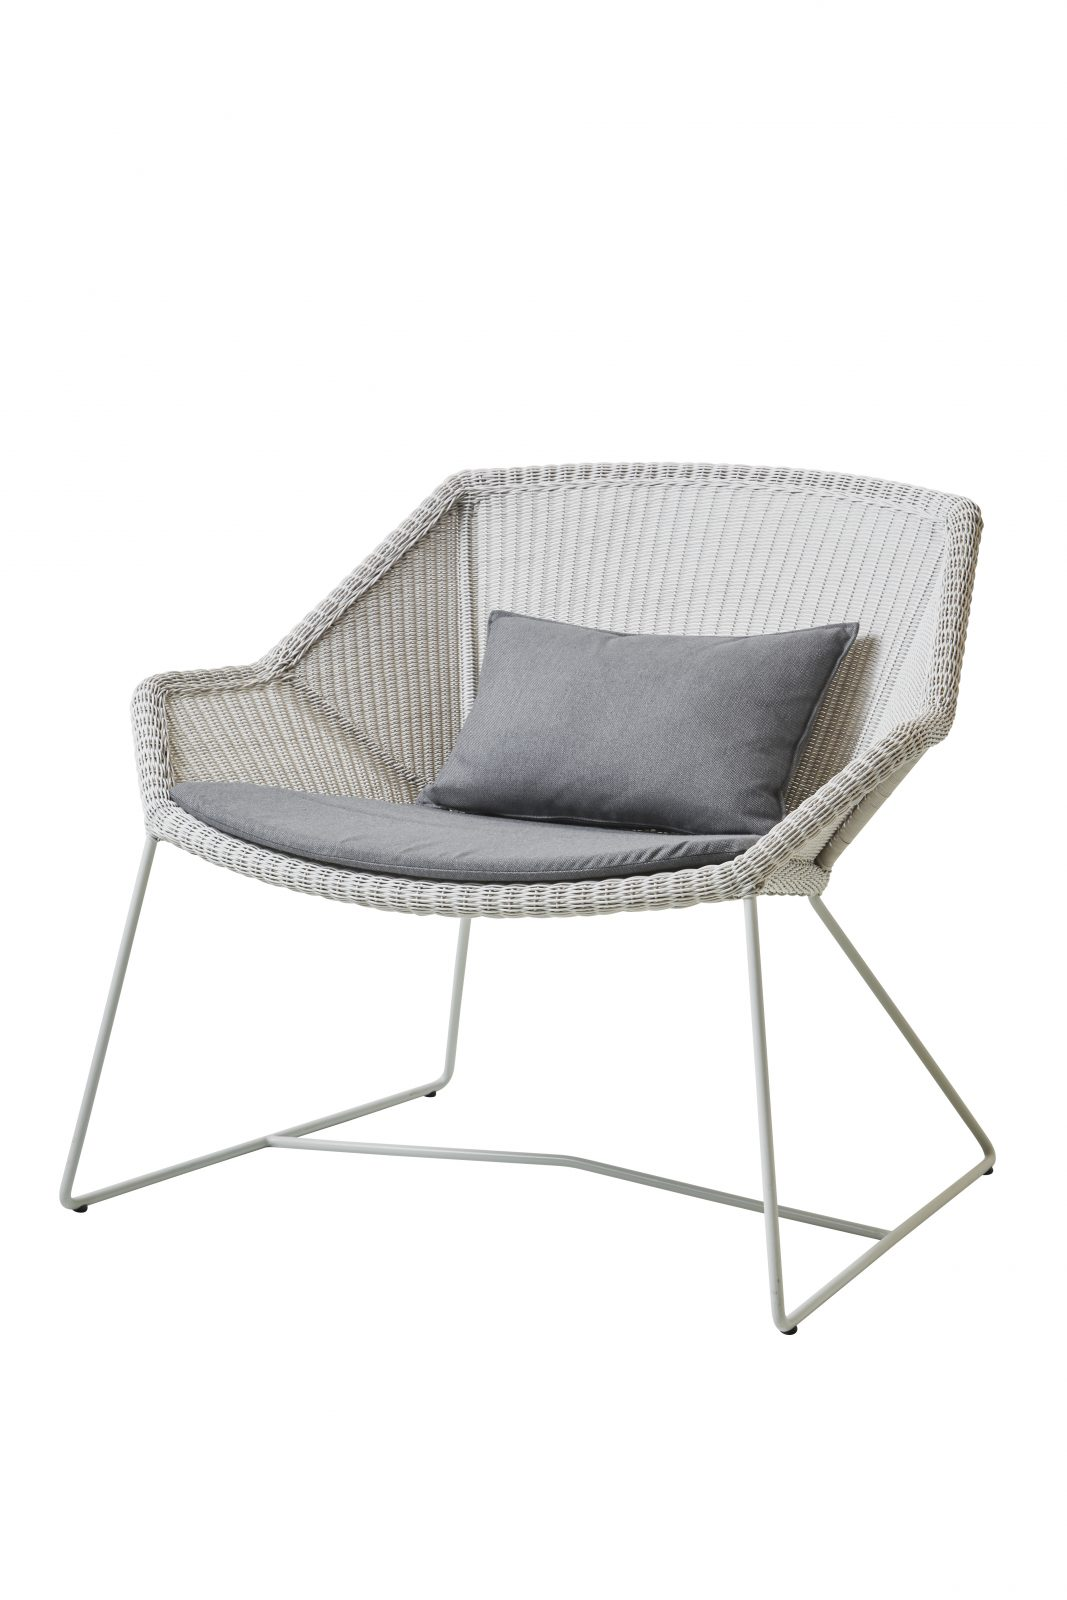 Cane Line Breeze Lounge Chair Available At Nordic Urban In